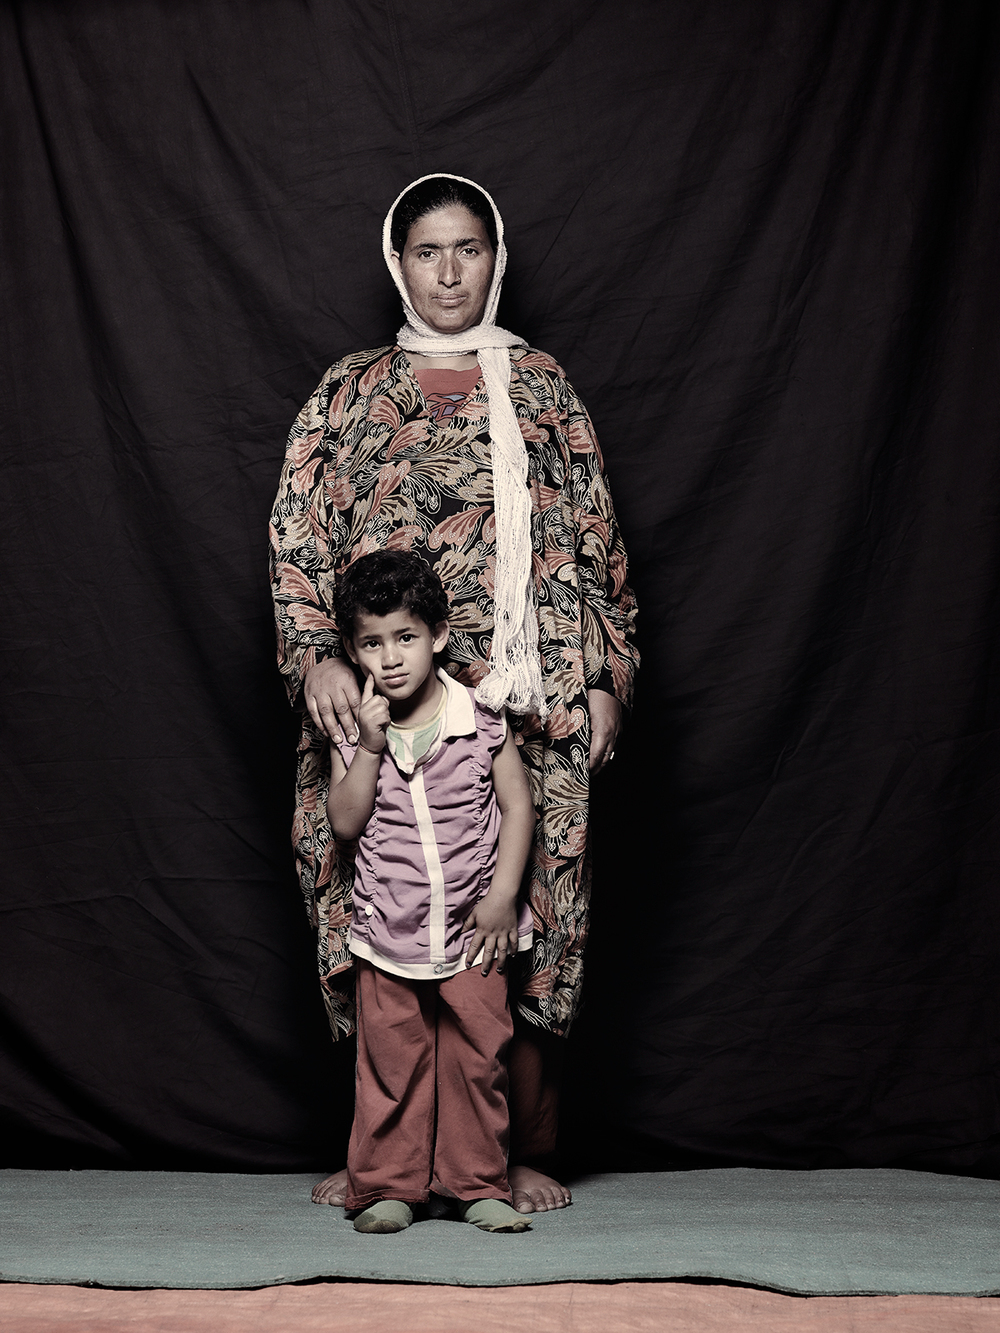 Shaheen Bilal, 27 and Surya Bilal, 4, D-camp, 2013